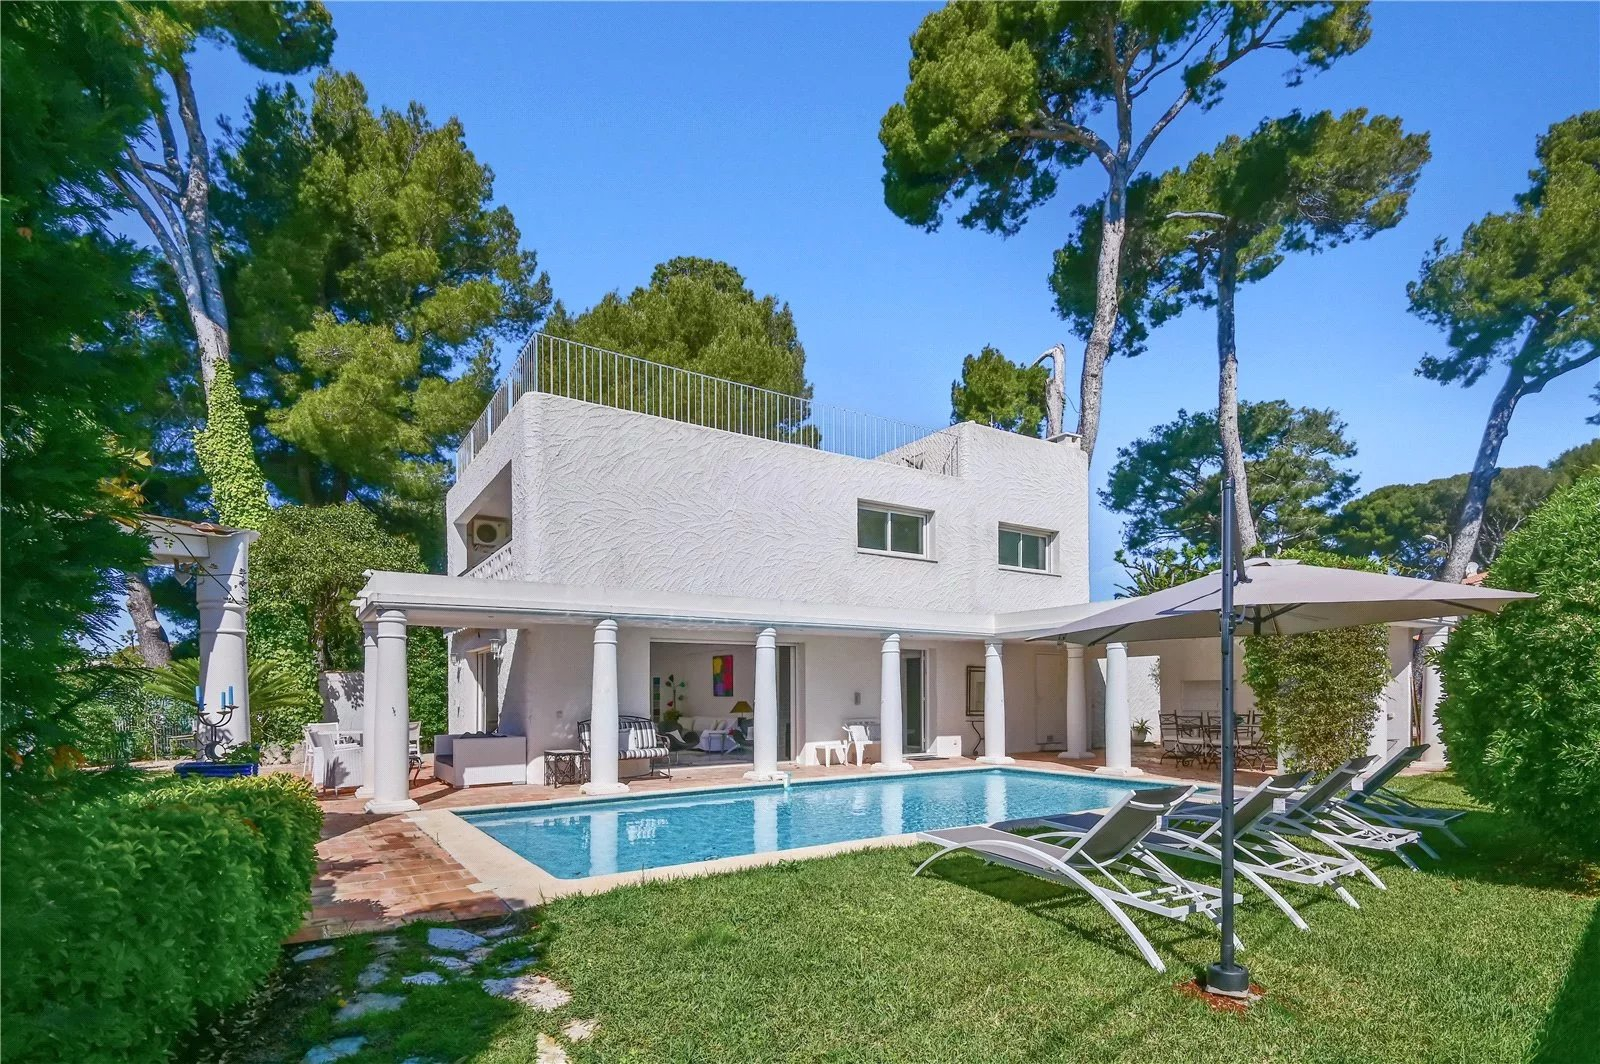 Five bedroom modern style villa with pool in a quiet residential area.